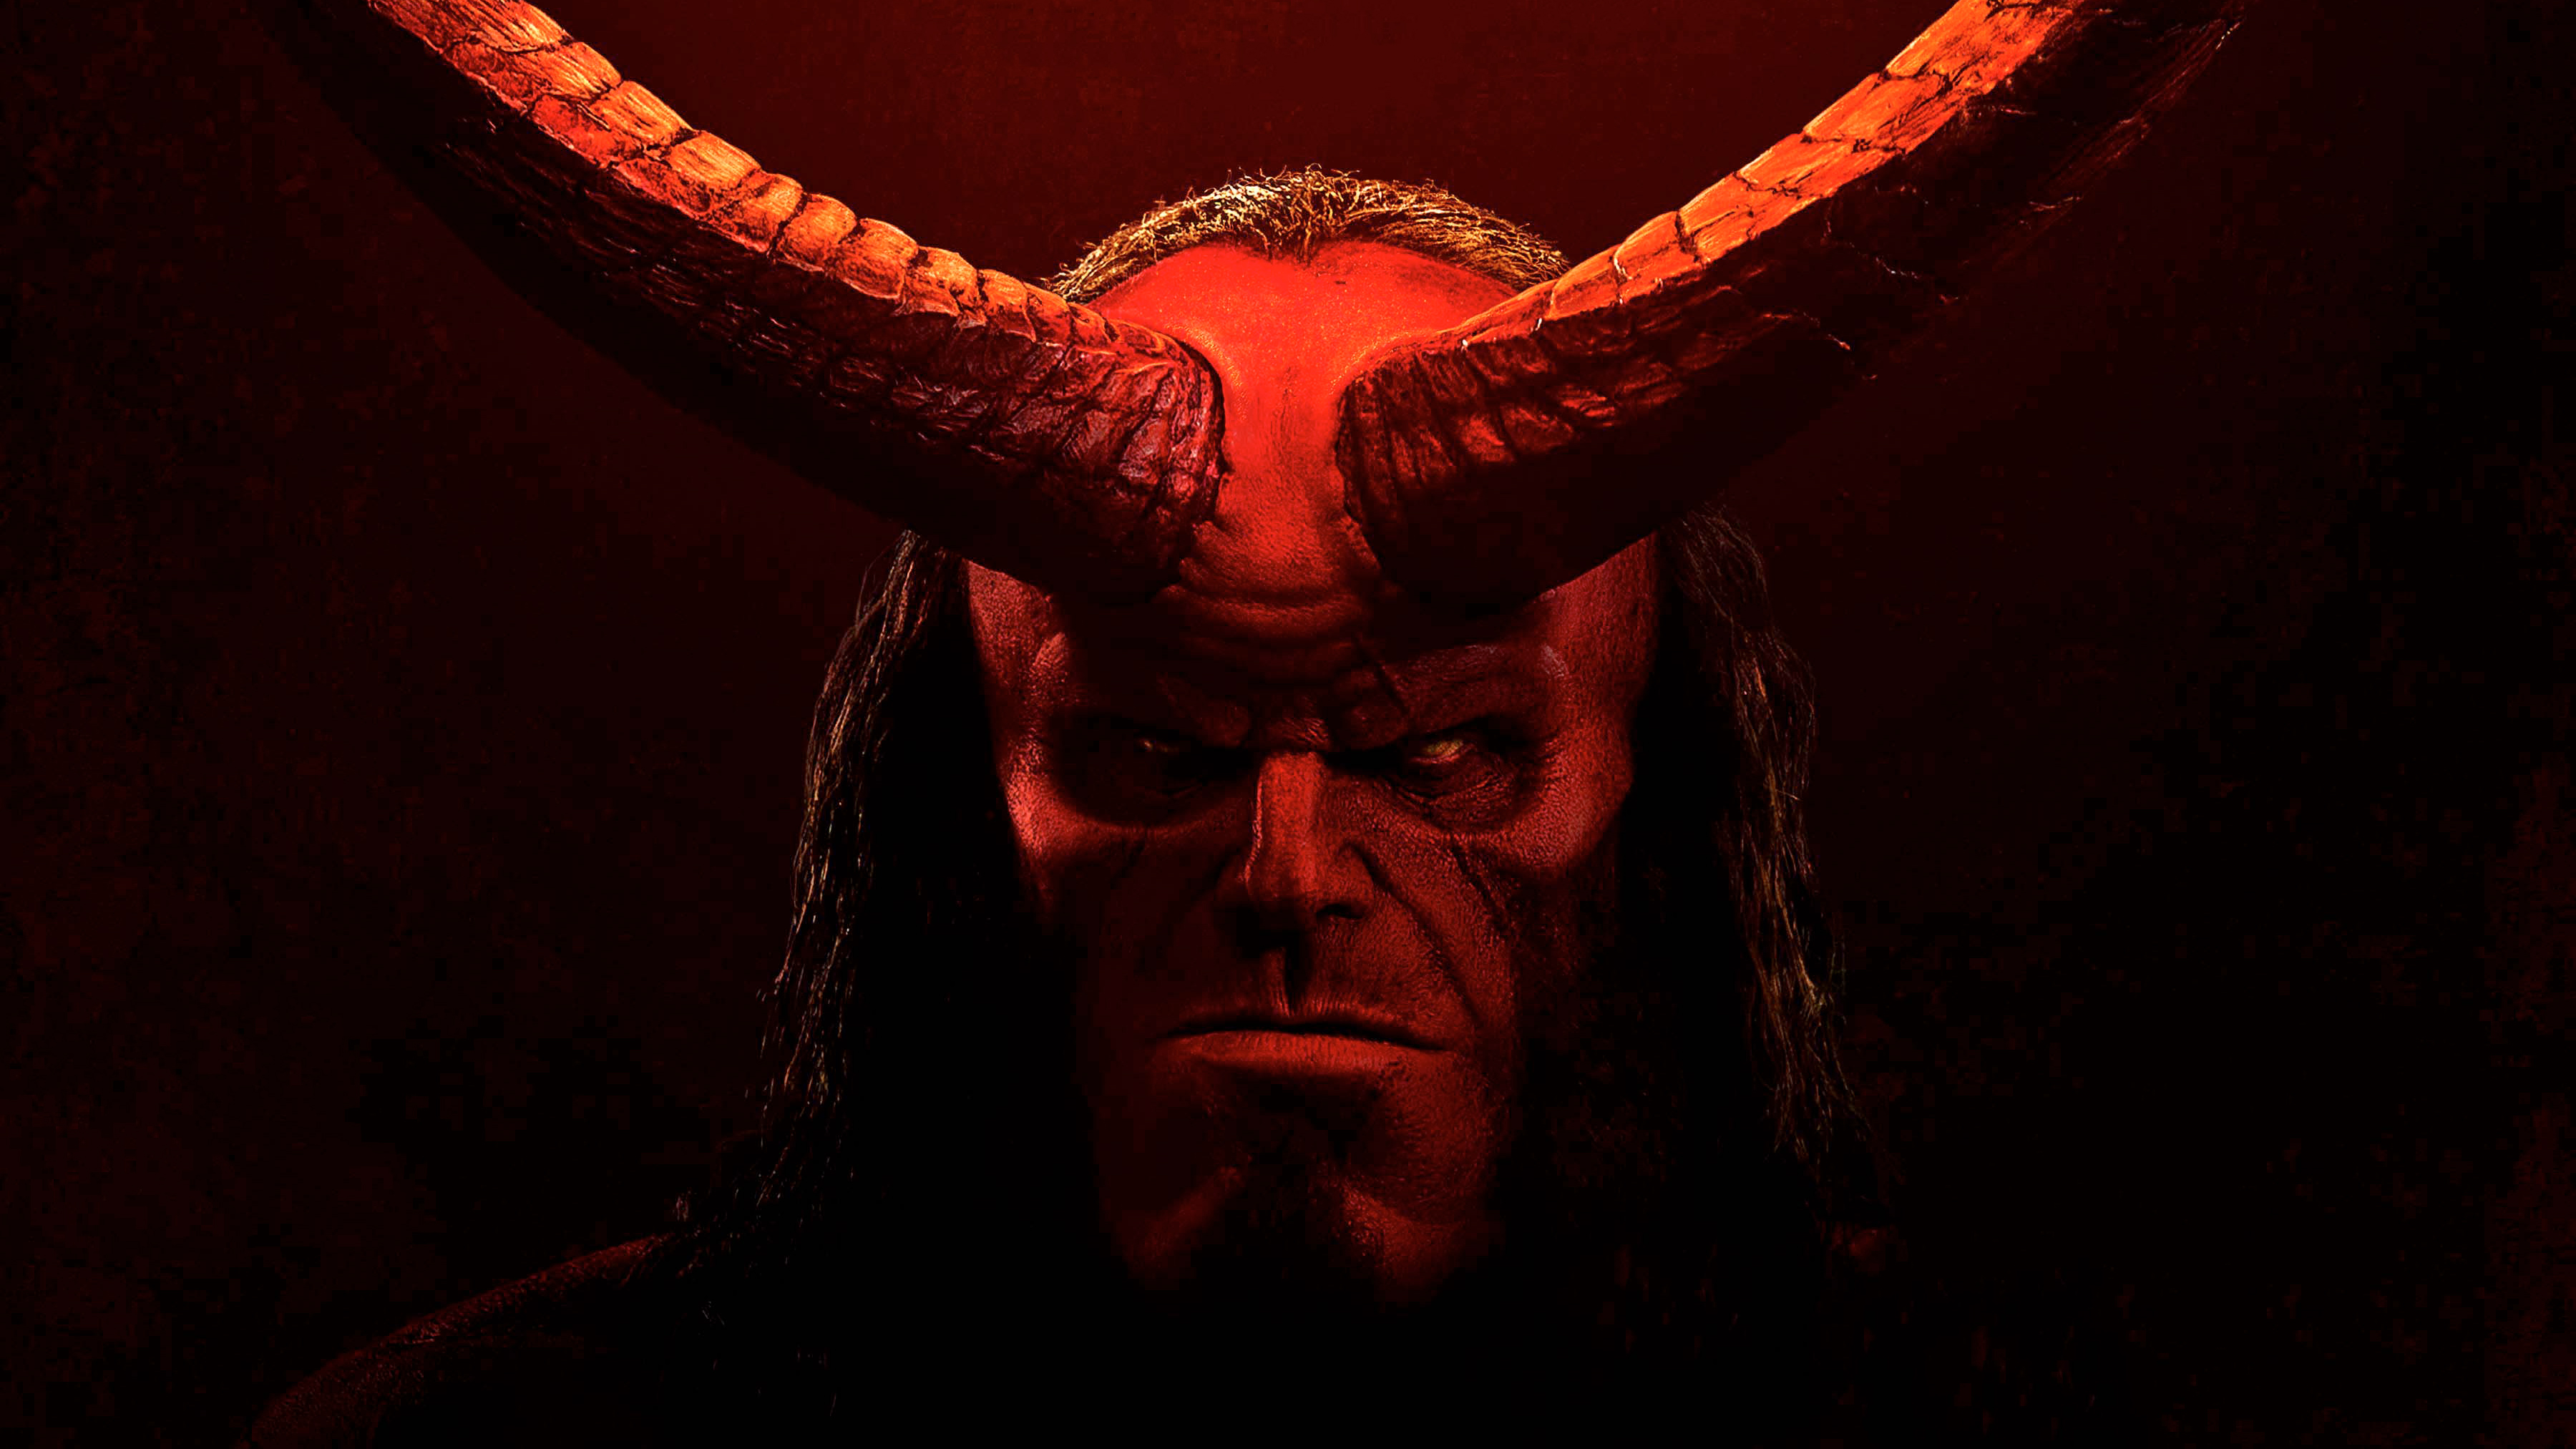 hellboy movie 2019 4k hd movies 4k wallpapers images backgrounds rh hdqwalls com